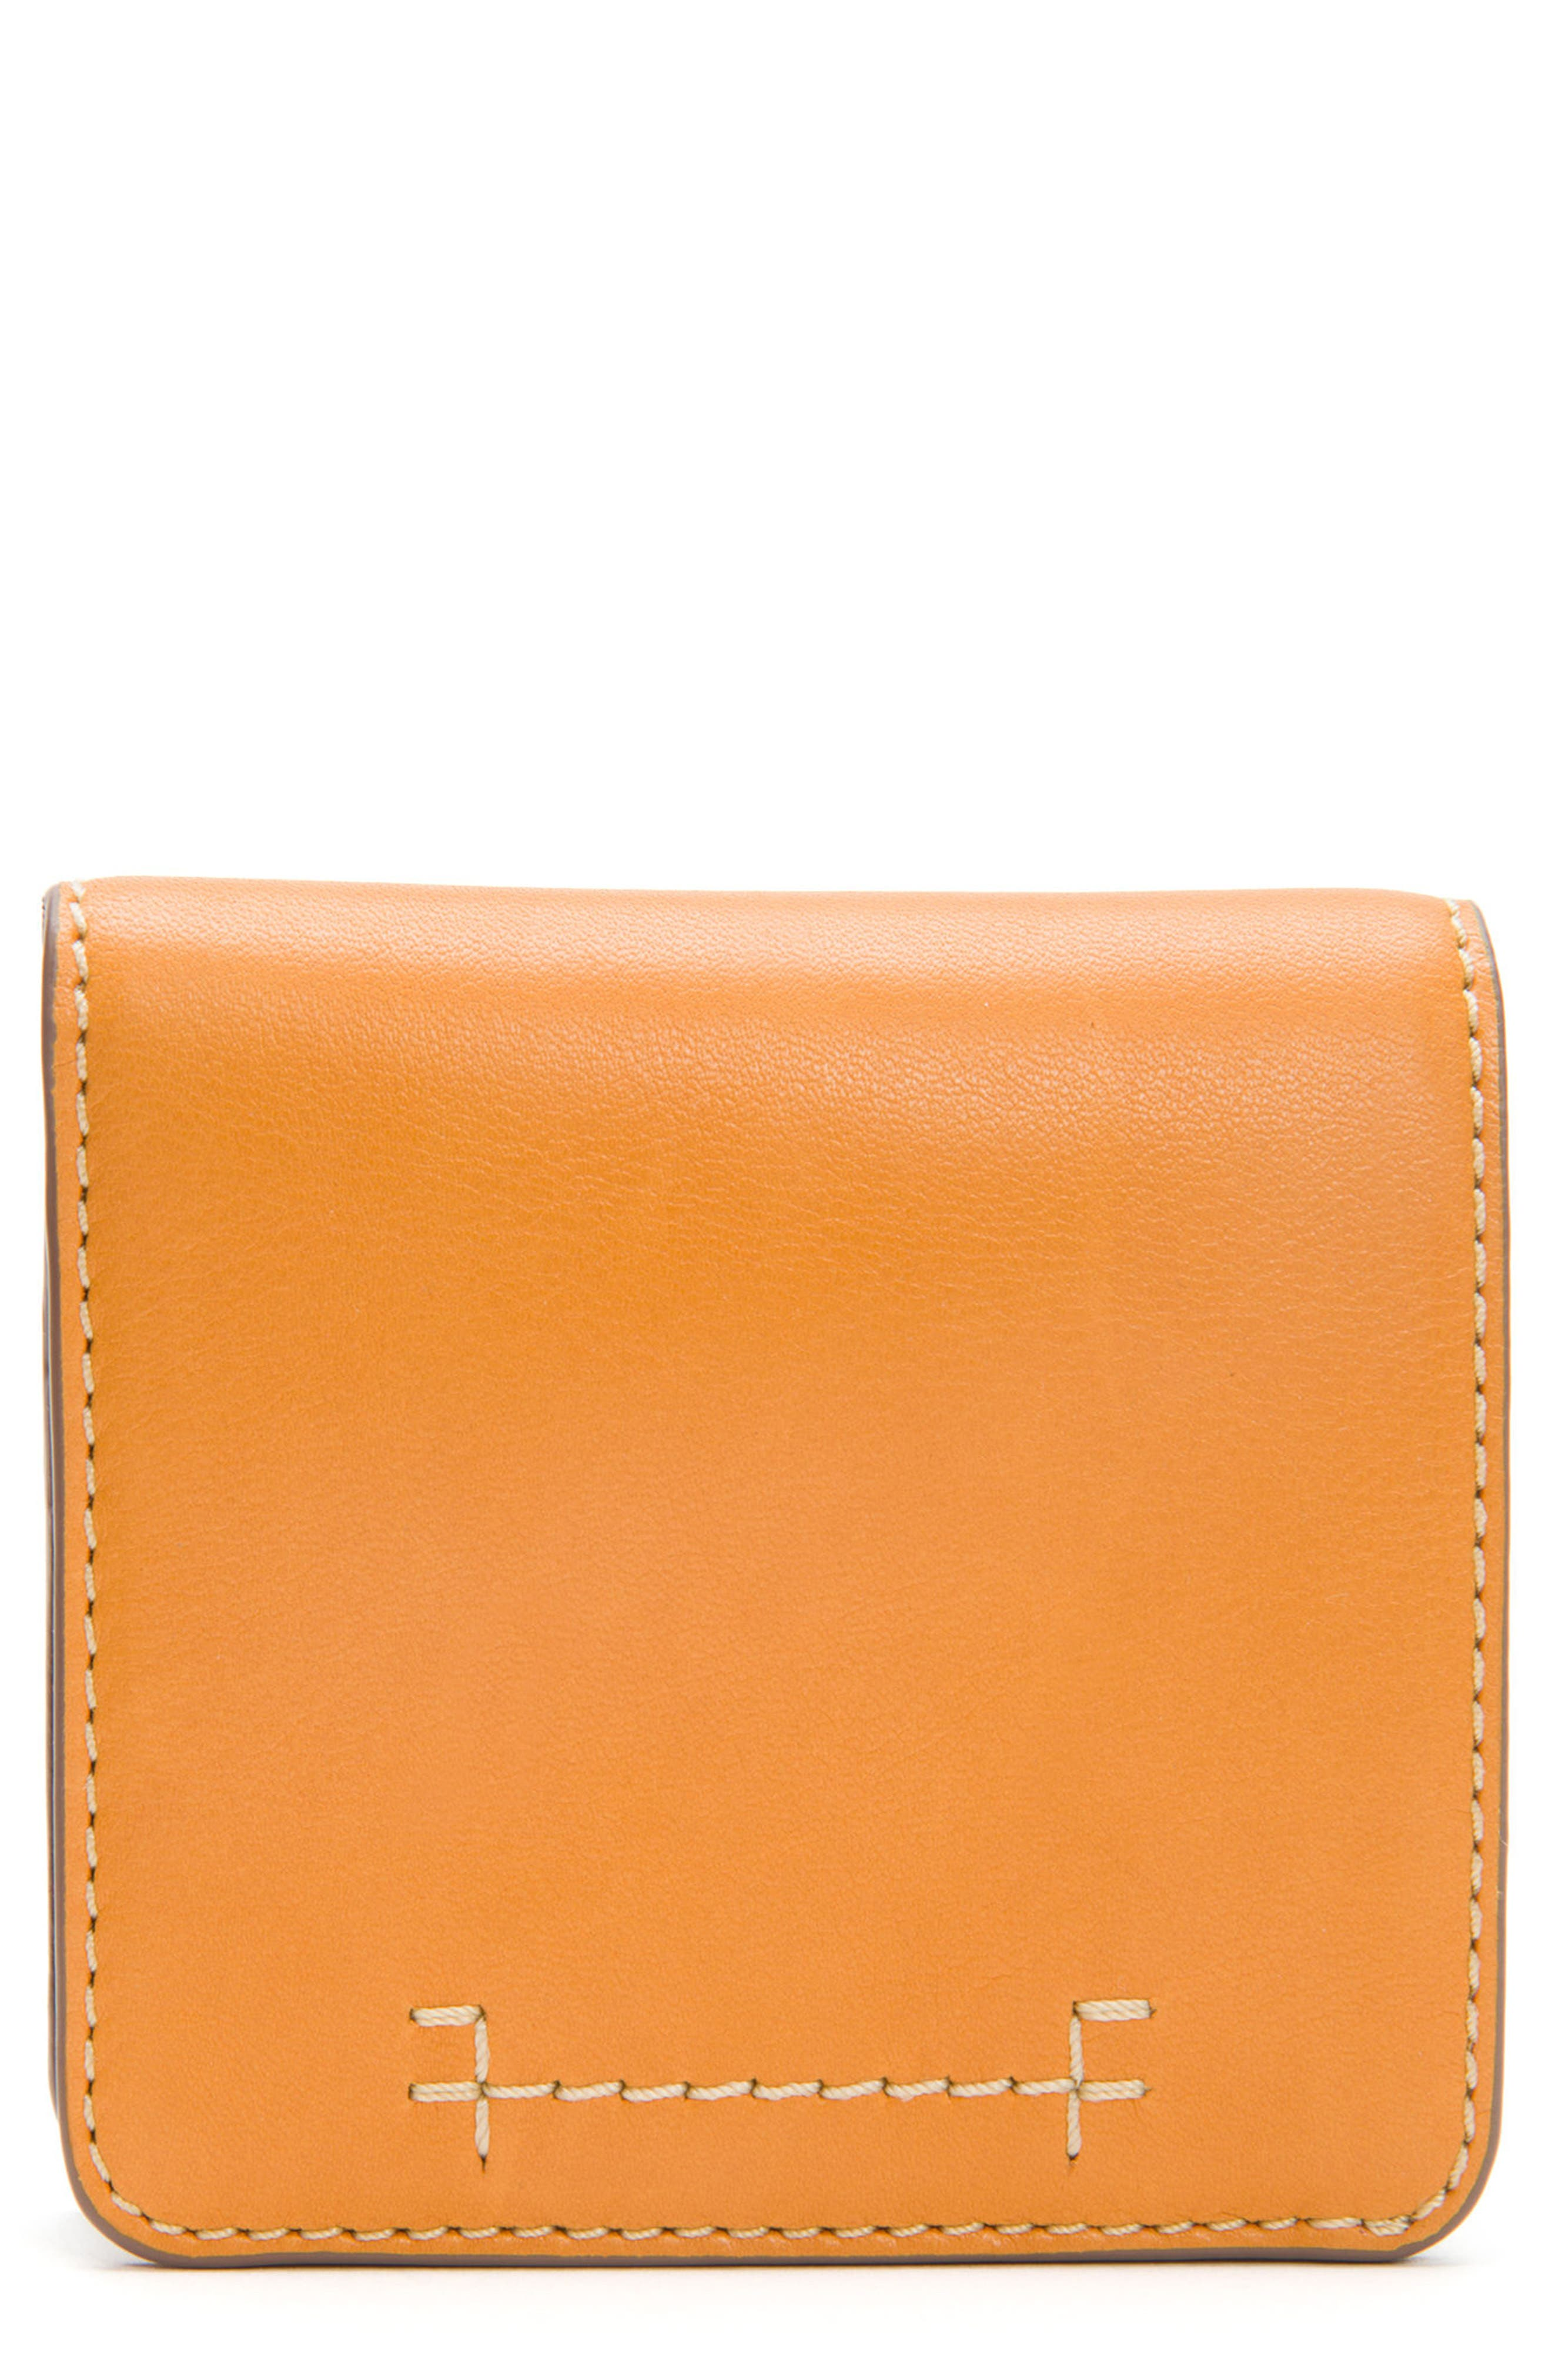 Carson Small Leather Wallet,                             Main thumbnail 1, color,                             Sunrise